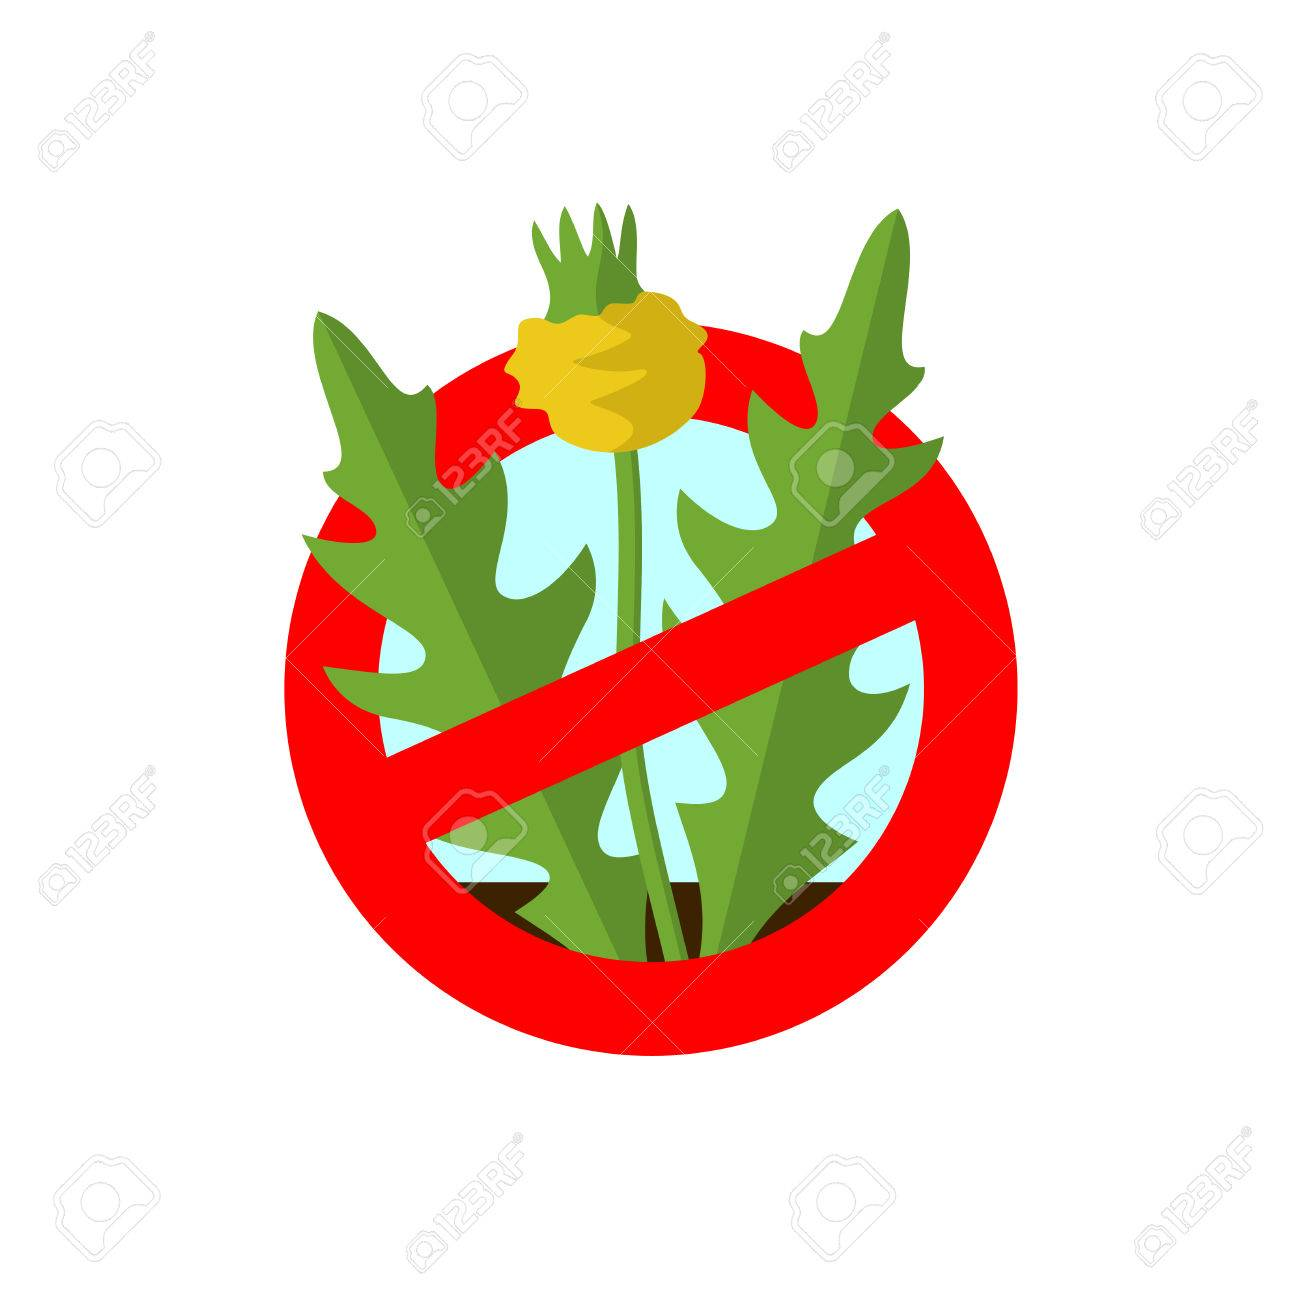 Lawn weed malicious restriction sign. Garden weed silhouette with red round prohibition sign. - 63531379